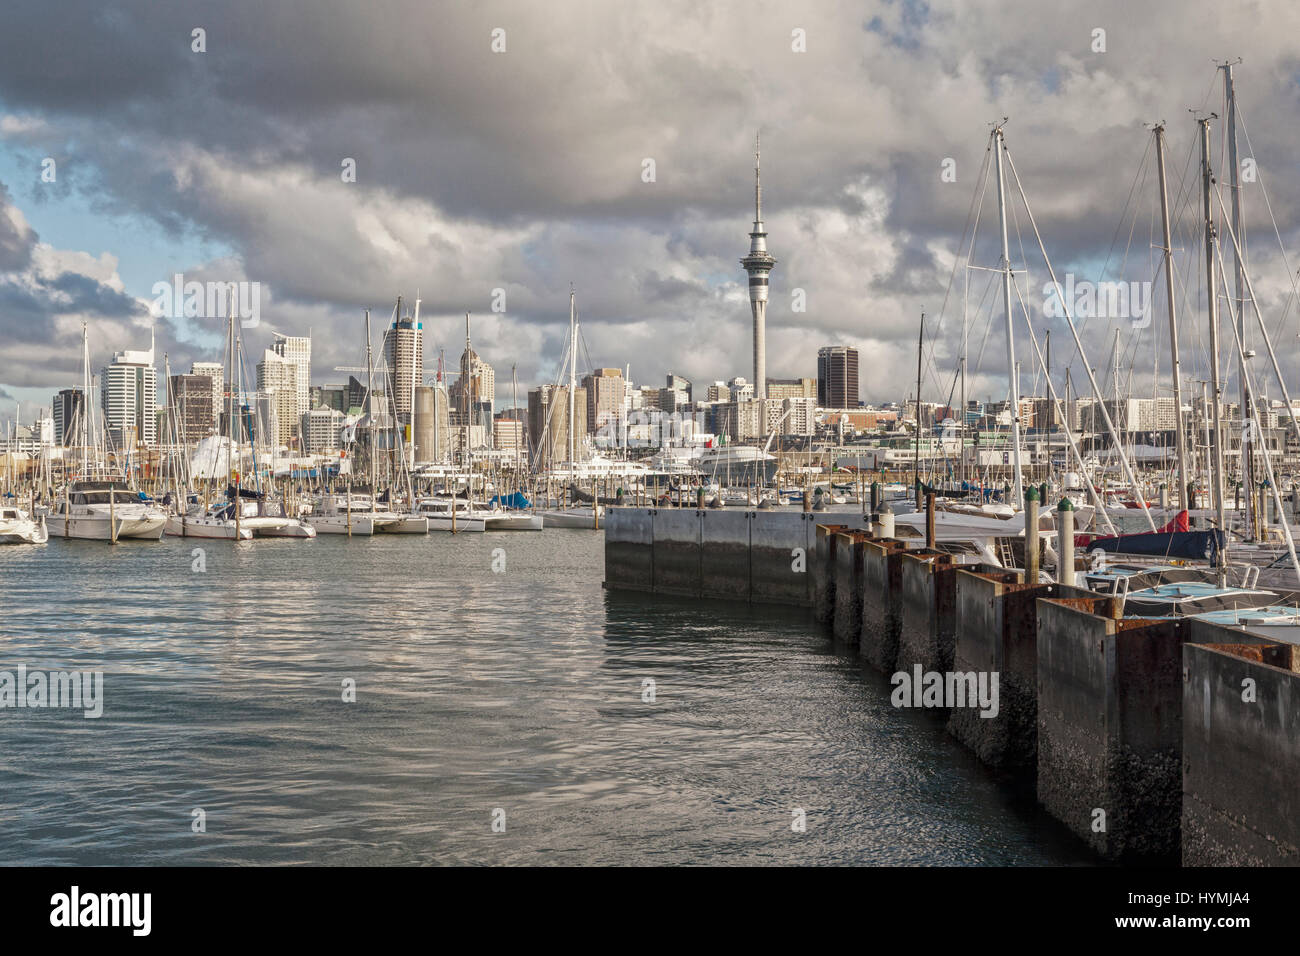 Auckland CBD and Westhaven Marina under a dramatic sunset sky. Stock Photo